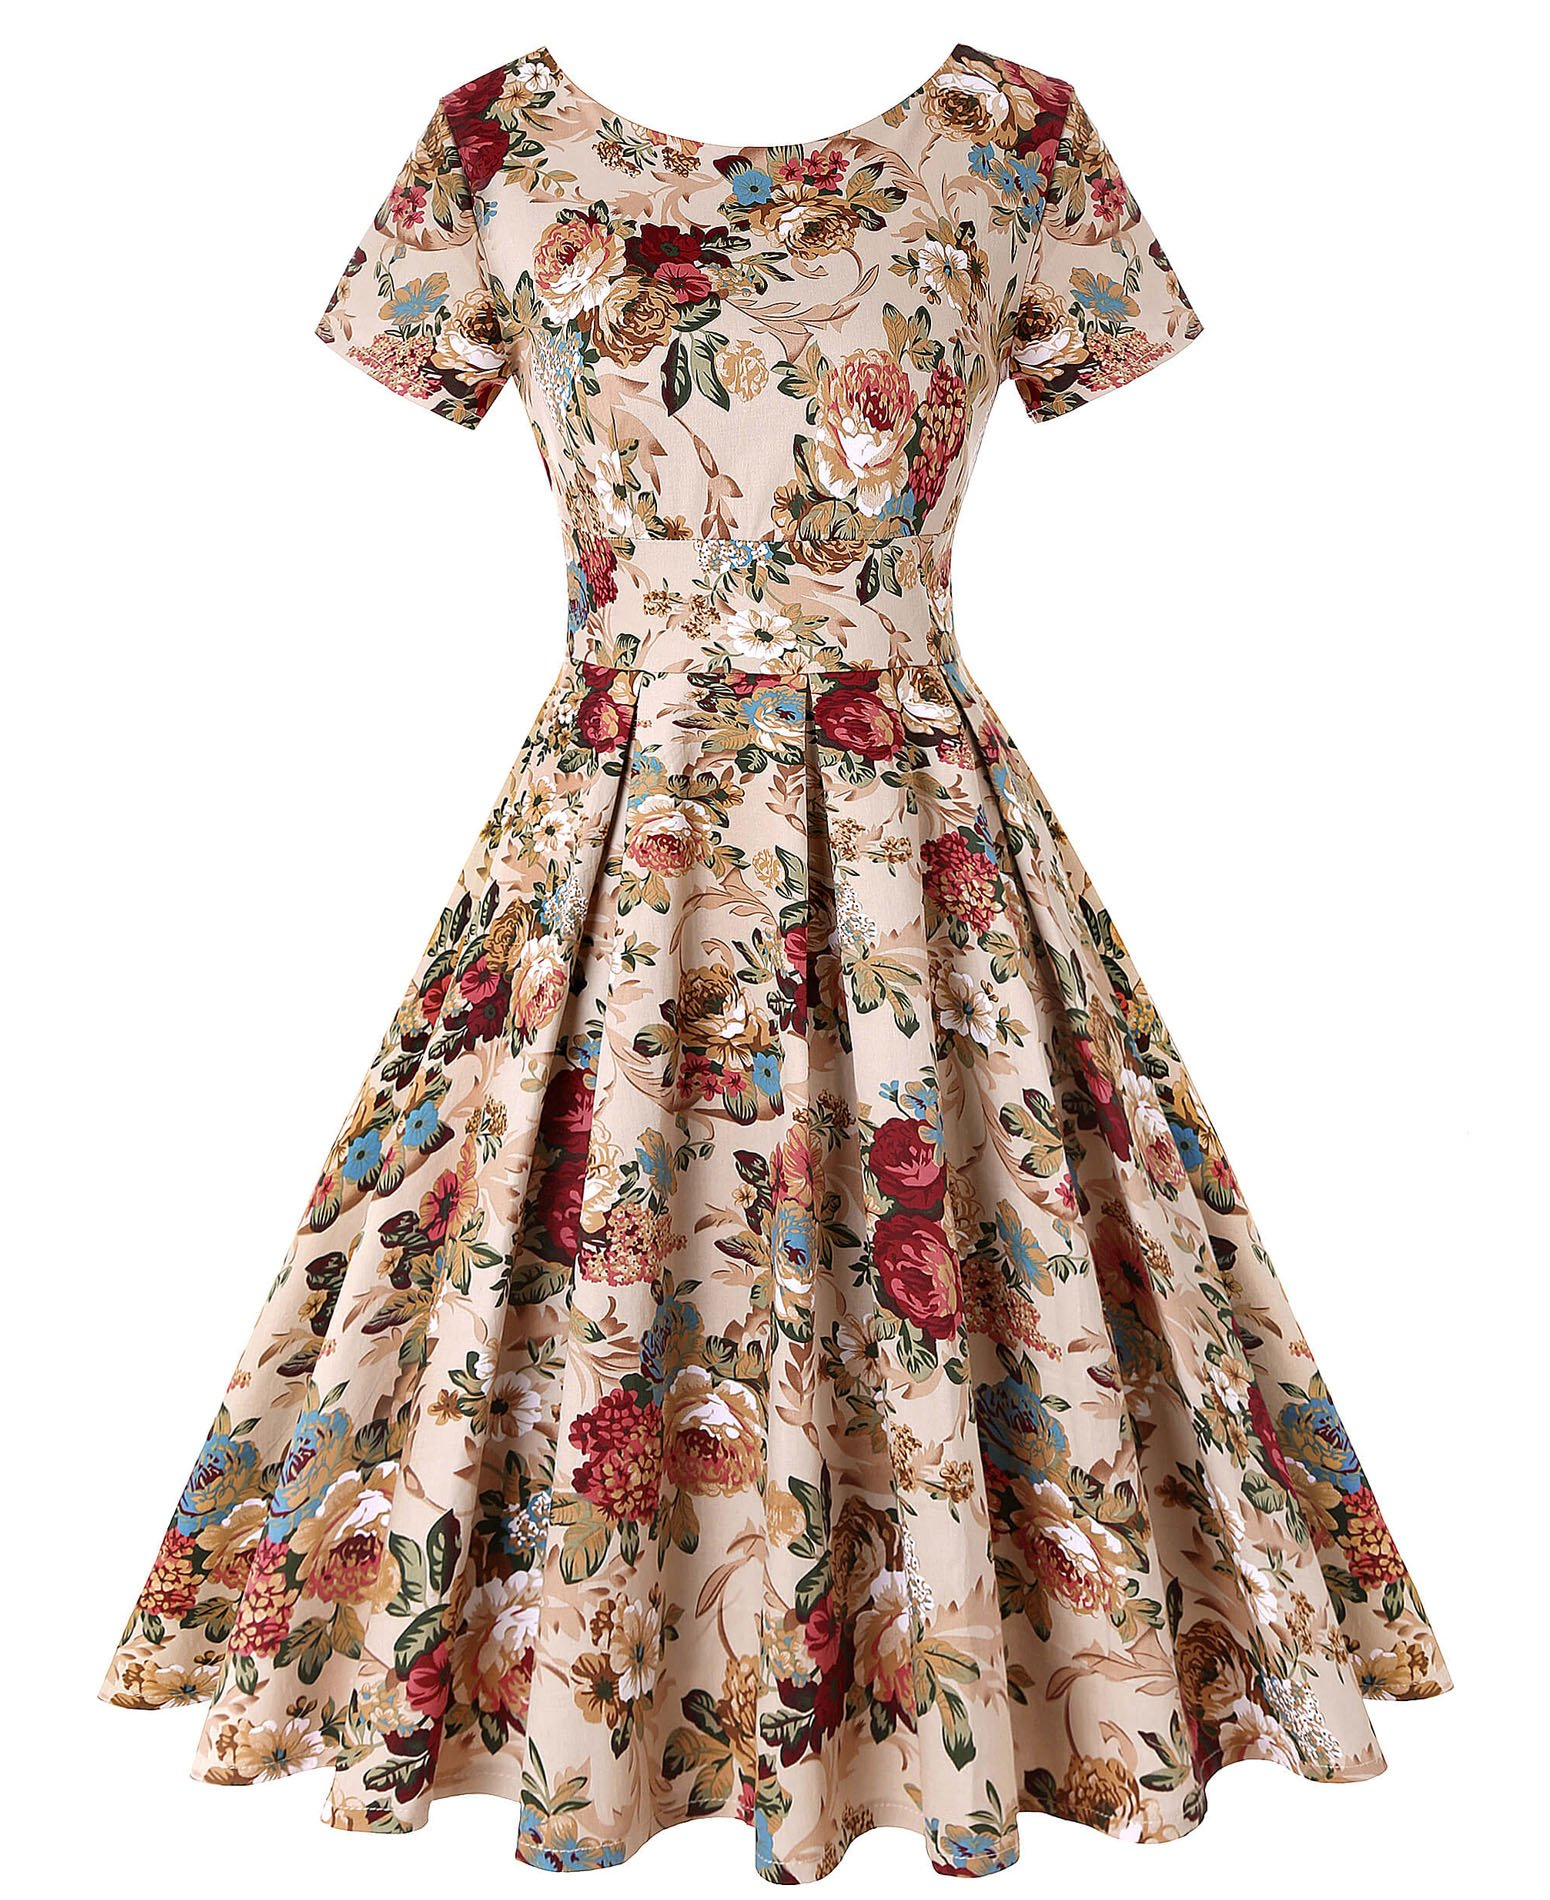 ROOSEY Womens 1950s Vintage Dresses Short Sleeve Rockabilly Cocktail Party Swing Dress, Pattern 3, Large